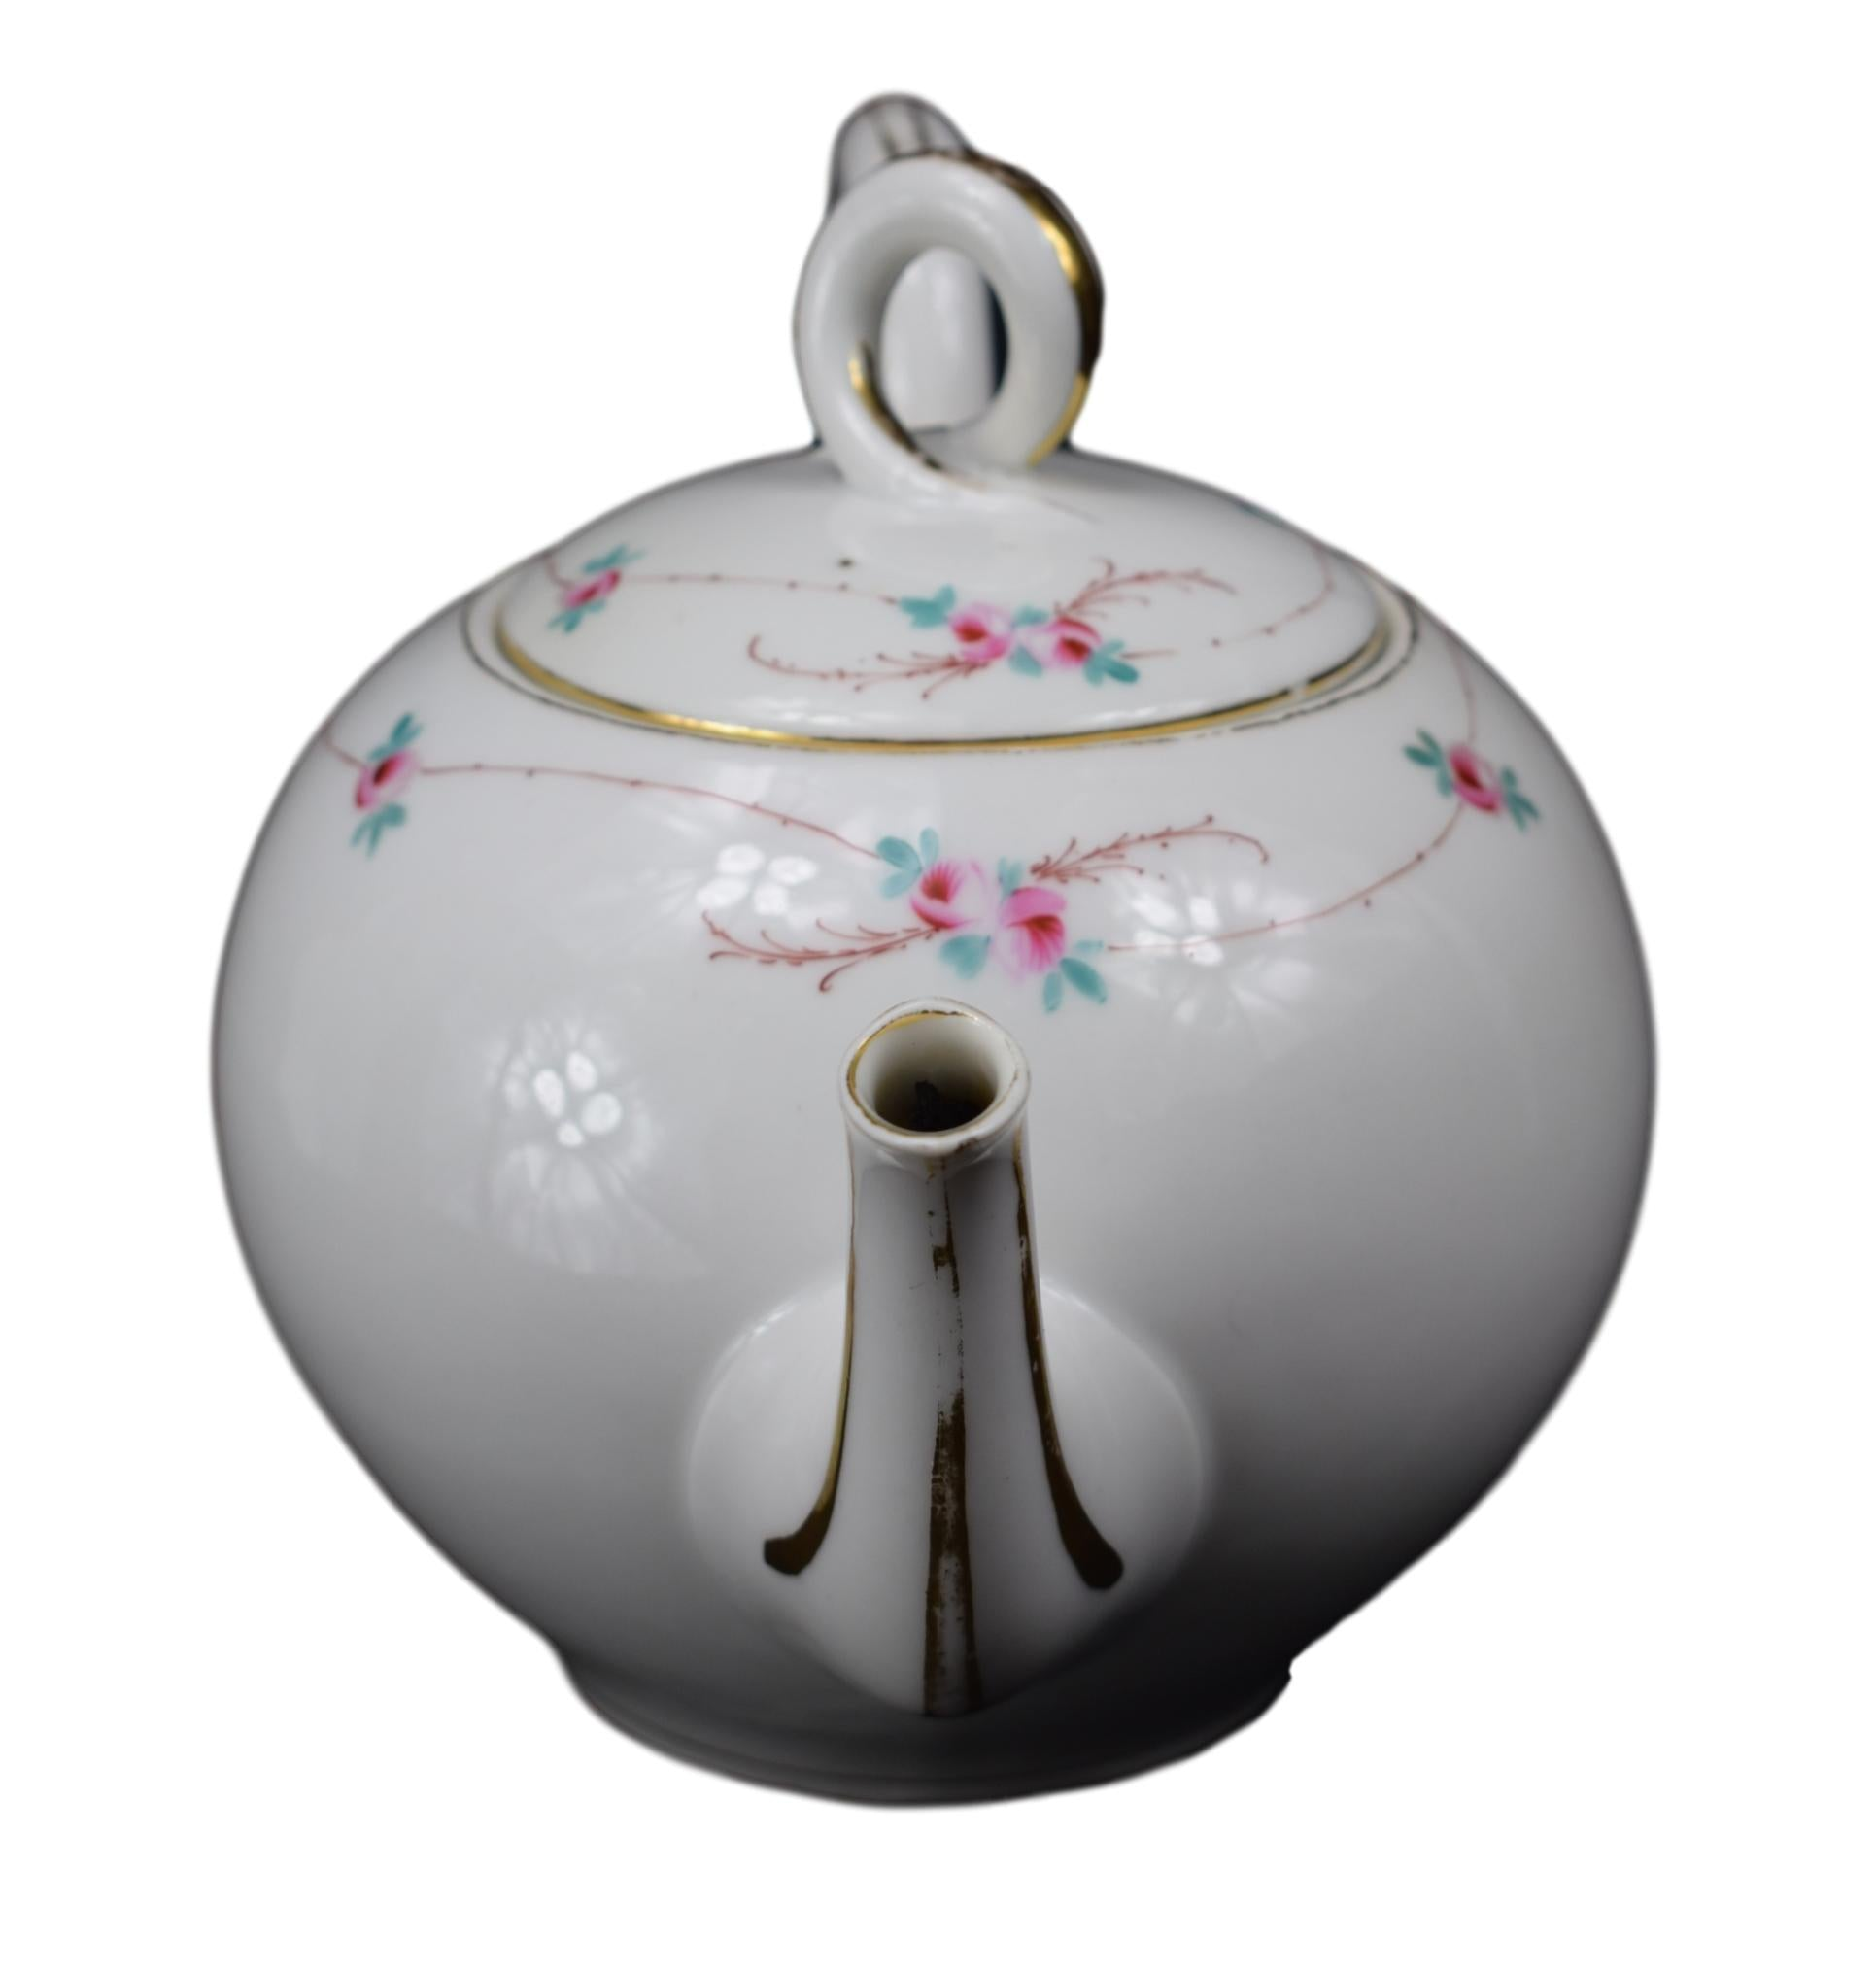 19th.C Paris Porcelain Tea Pot - Charmantiques